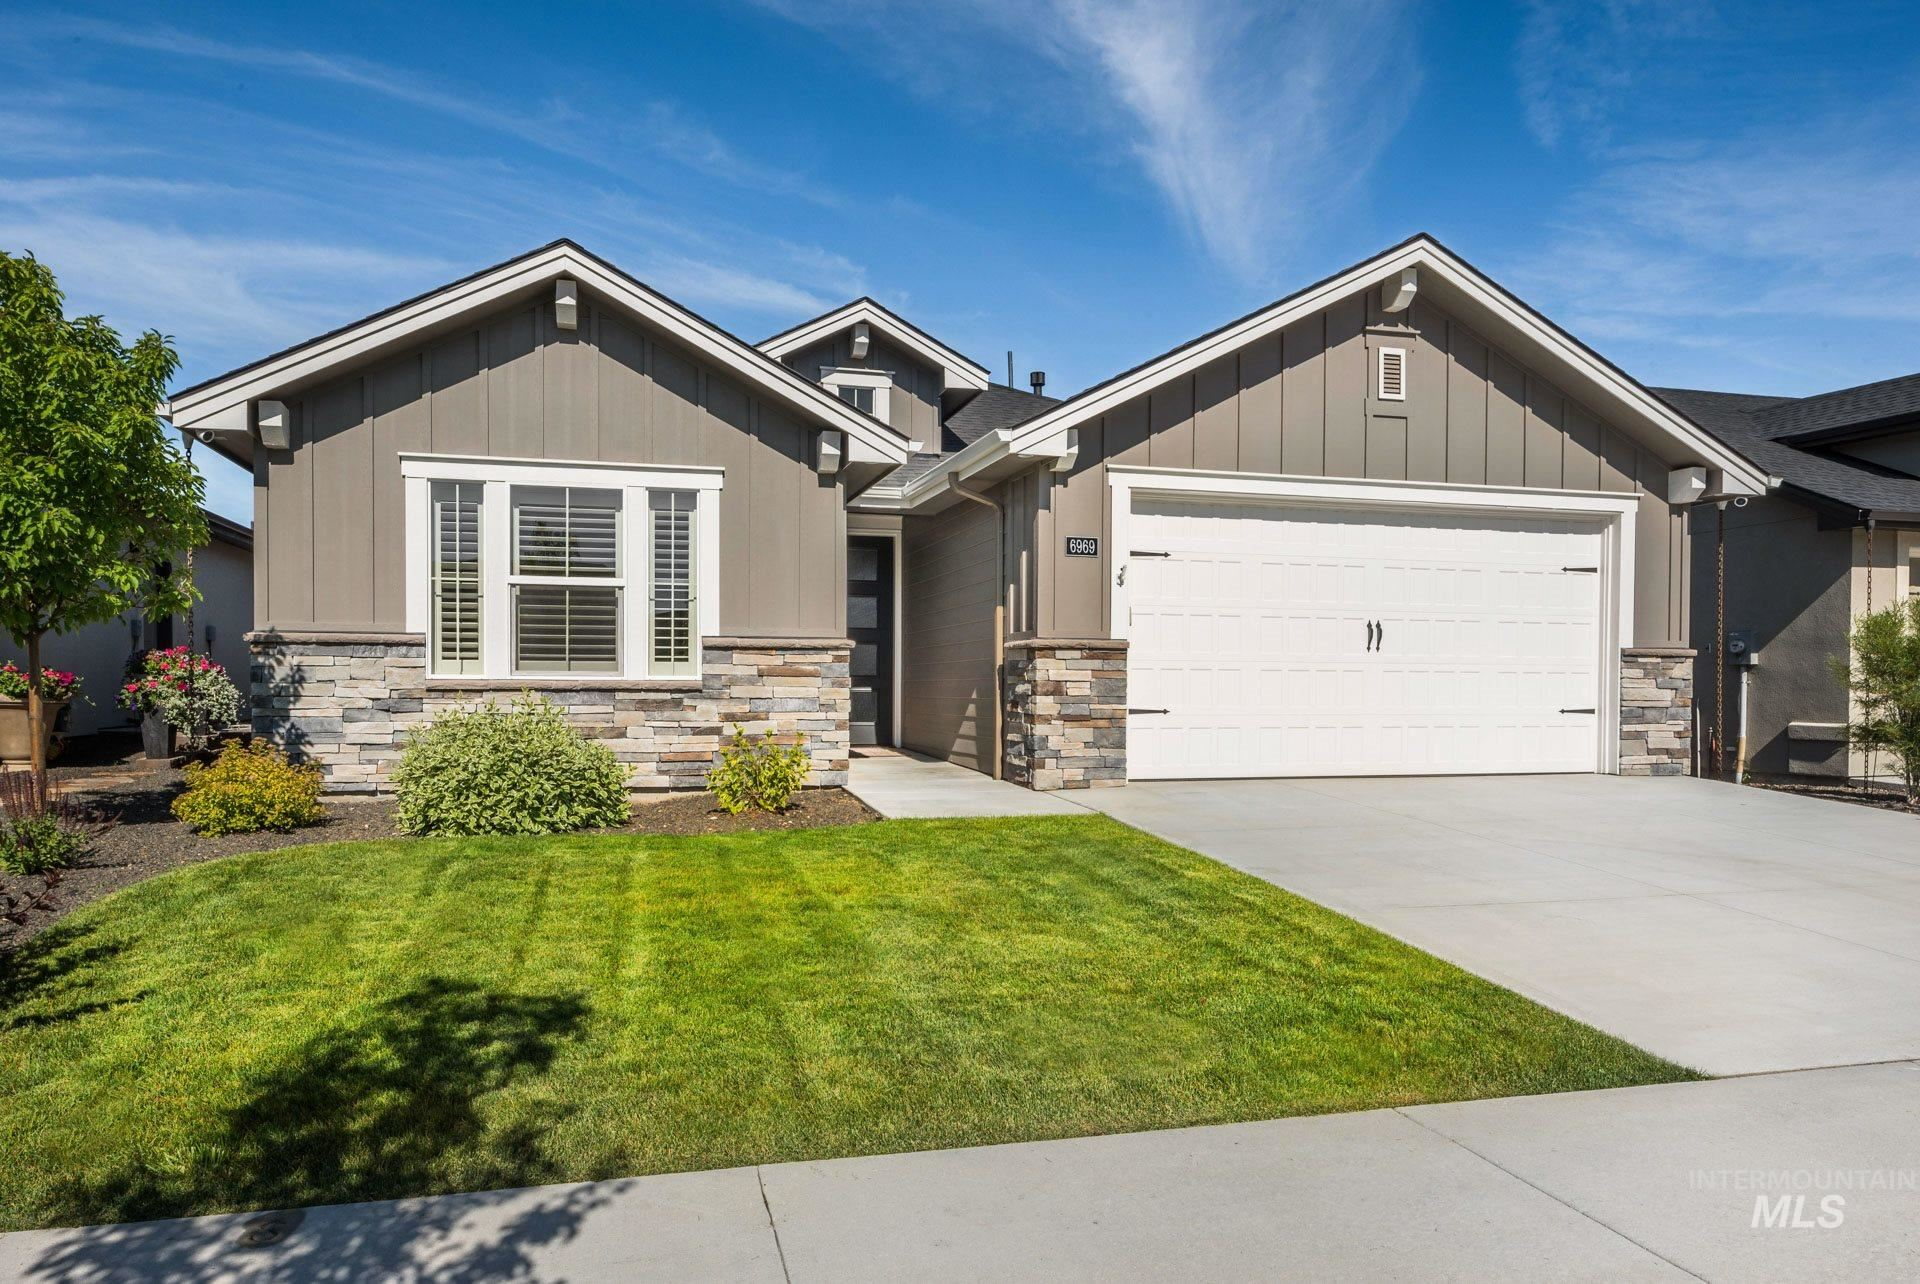 6969 Cathedral, Eagle, ID 83646 - MLS#: 98771219